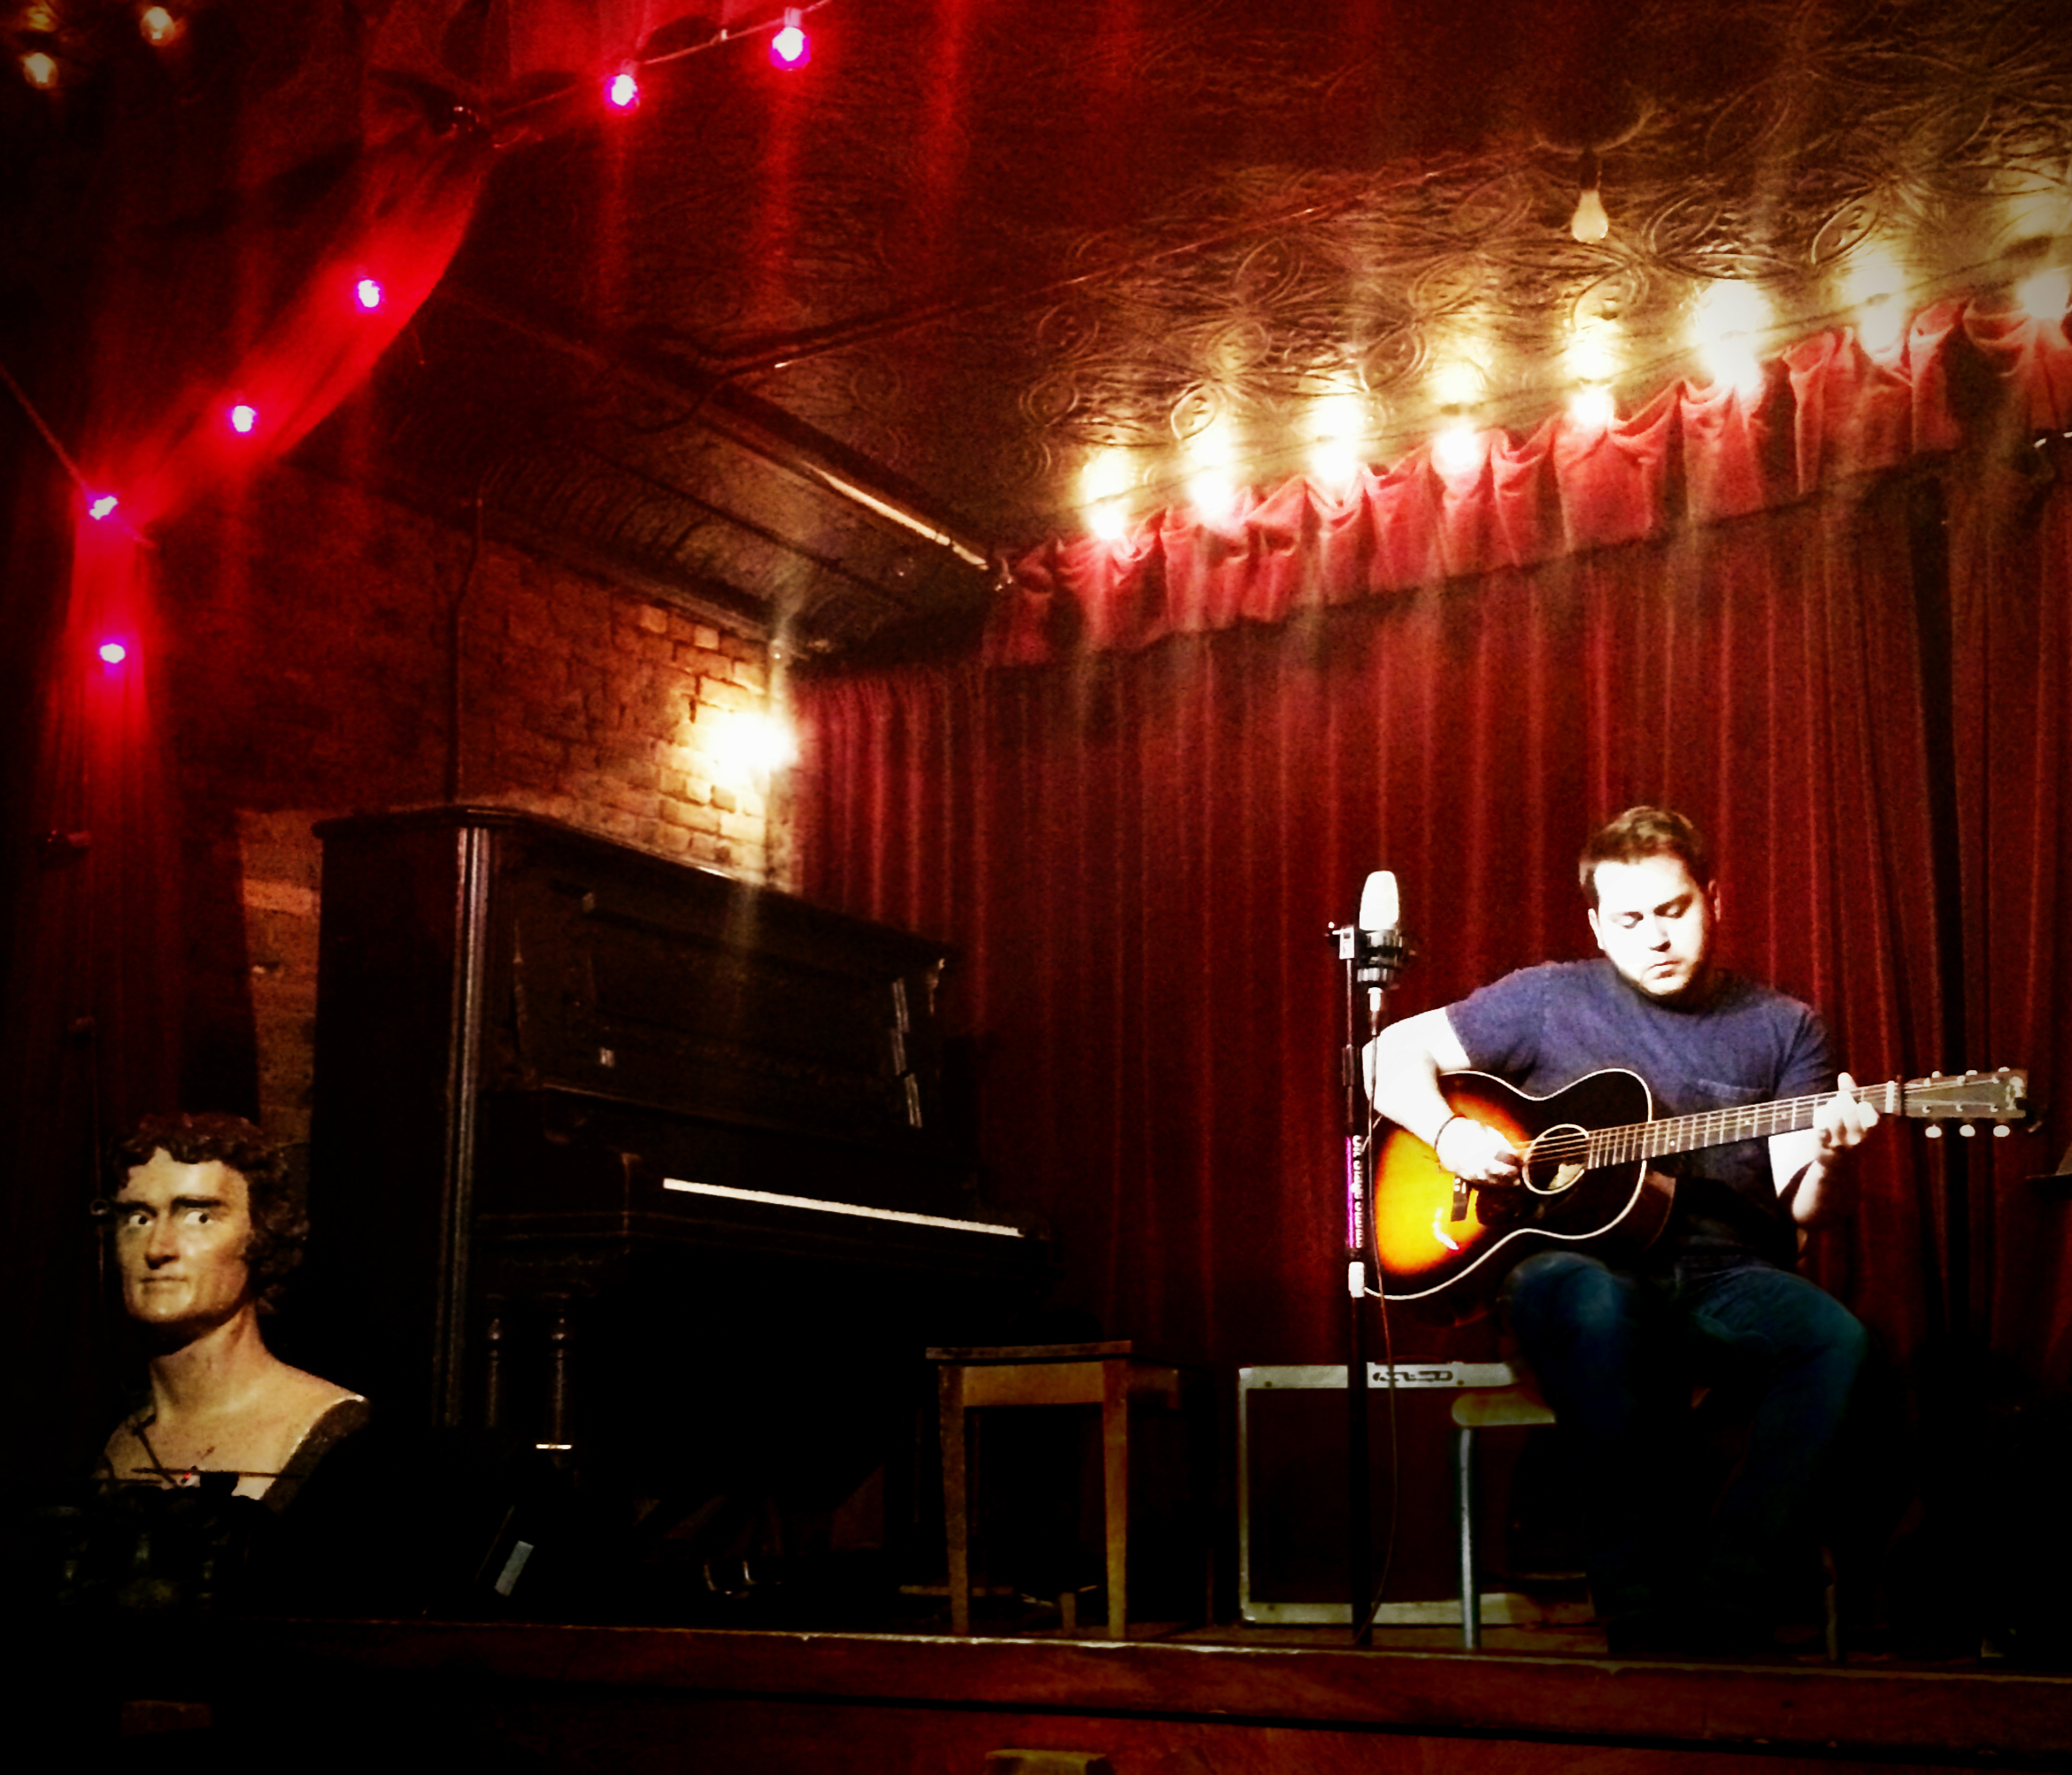 Jalopy Theater - Brooklyn - 10.17 (Photo credit:Rory Masterson)